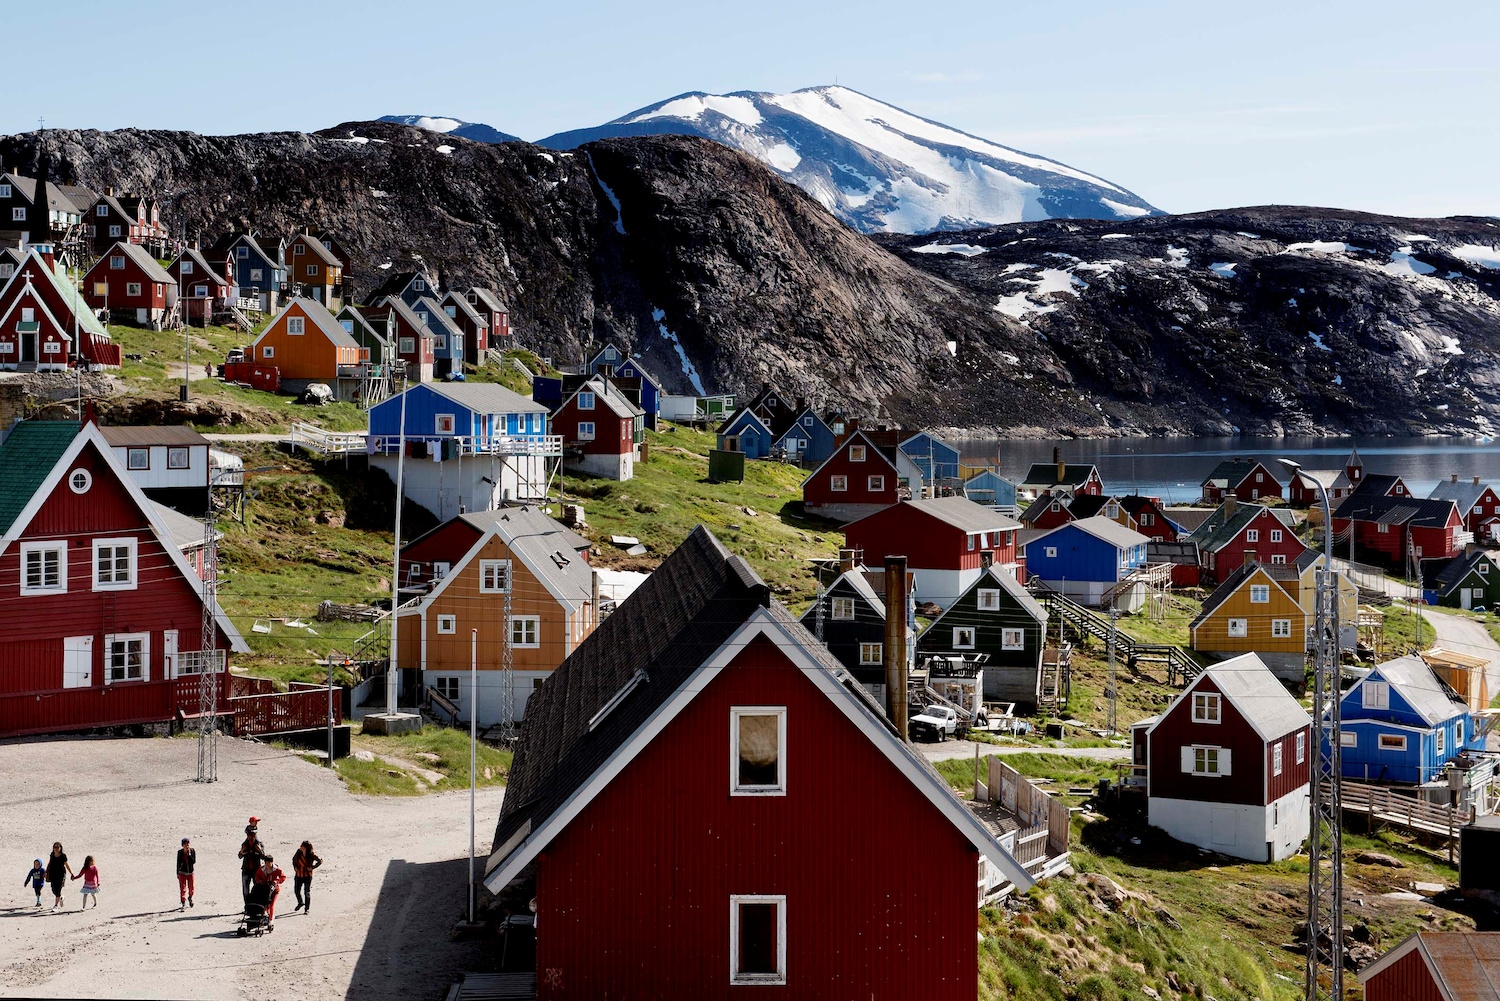 Upernavik in western Greenland is one of the few settlements on the world's largest island, which has a population of only 56,000. (Reuters Photo)